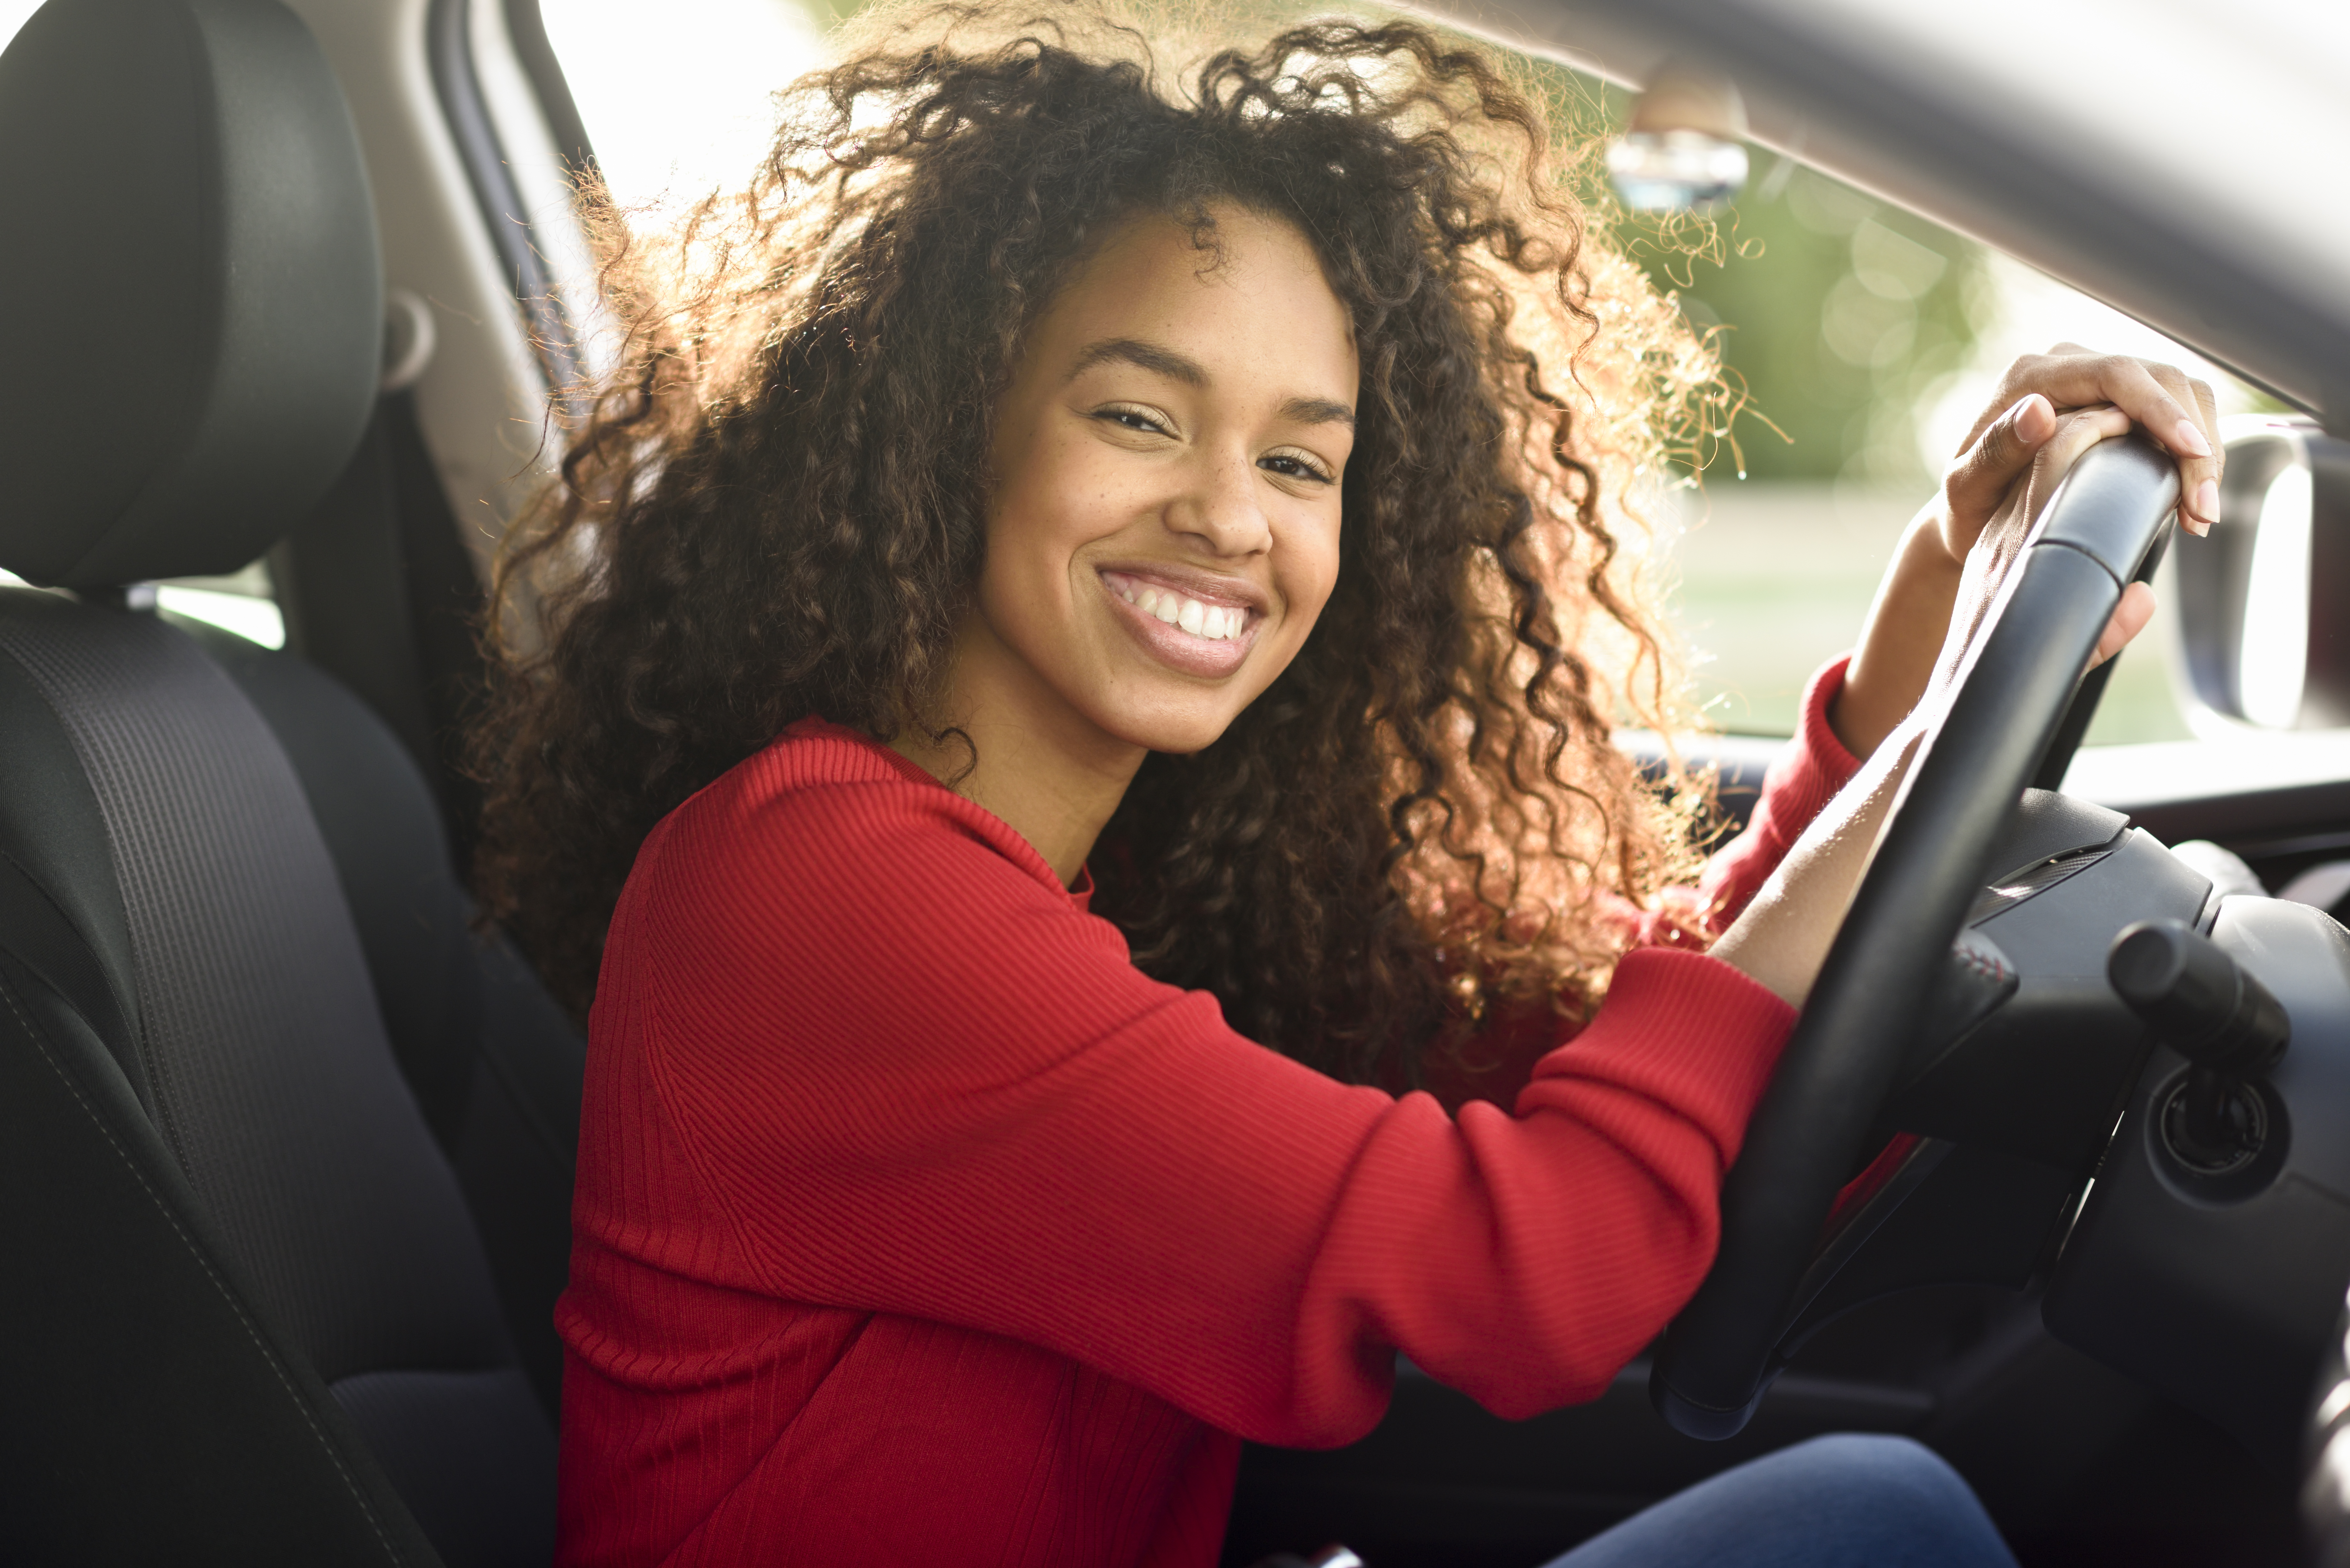 Safety measures for women driving alone